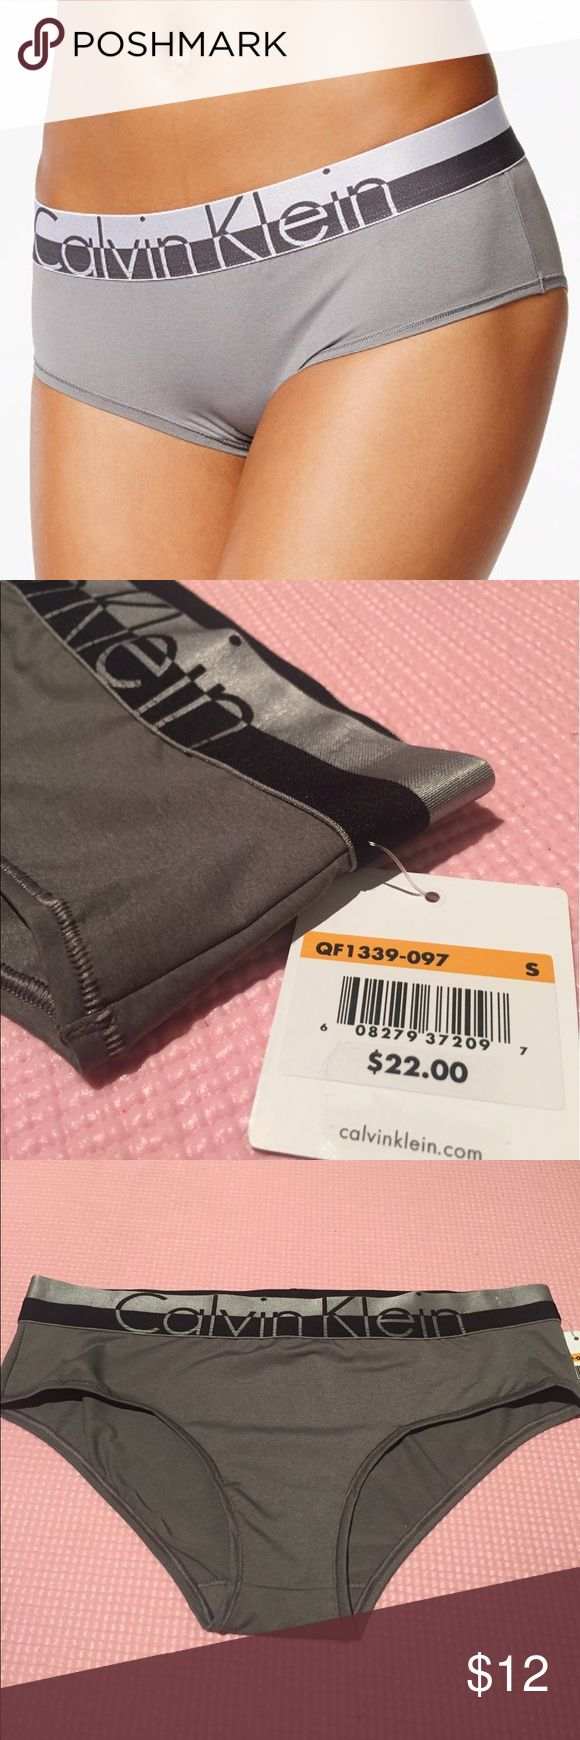 Calvin Klein Silver Hipster Panties Casual, stretch-cotton thong Logo elasticized band Cotton/elastane Machine wash Imported Never Been Worn! Still have tags on Calvin Klein Underwear Intimates & Sleepwear Panties